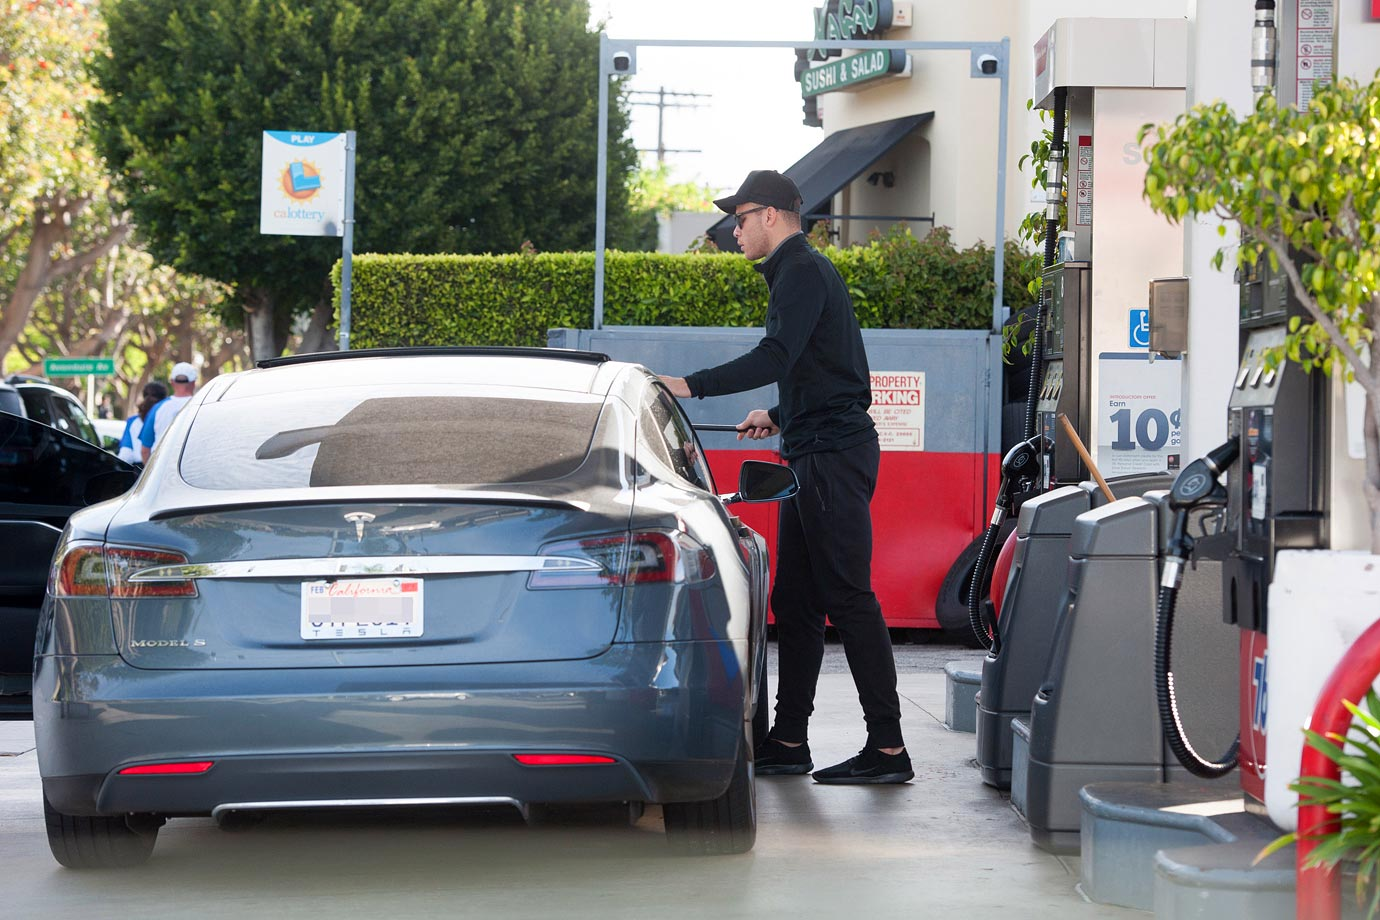 Blake Griffin squeegees the windshield of his Tesla at a gas station in L.A. Not above going to self service.